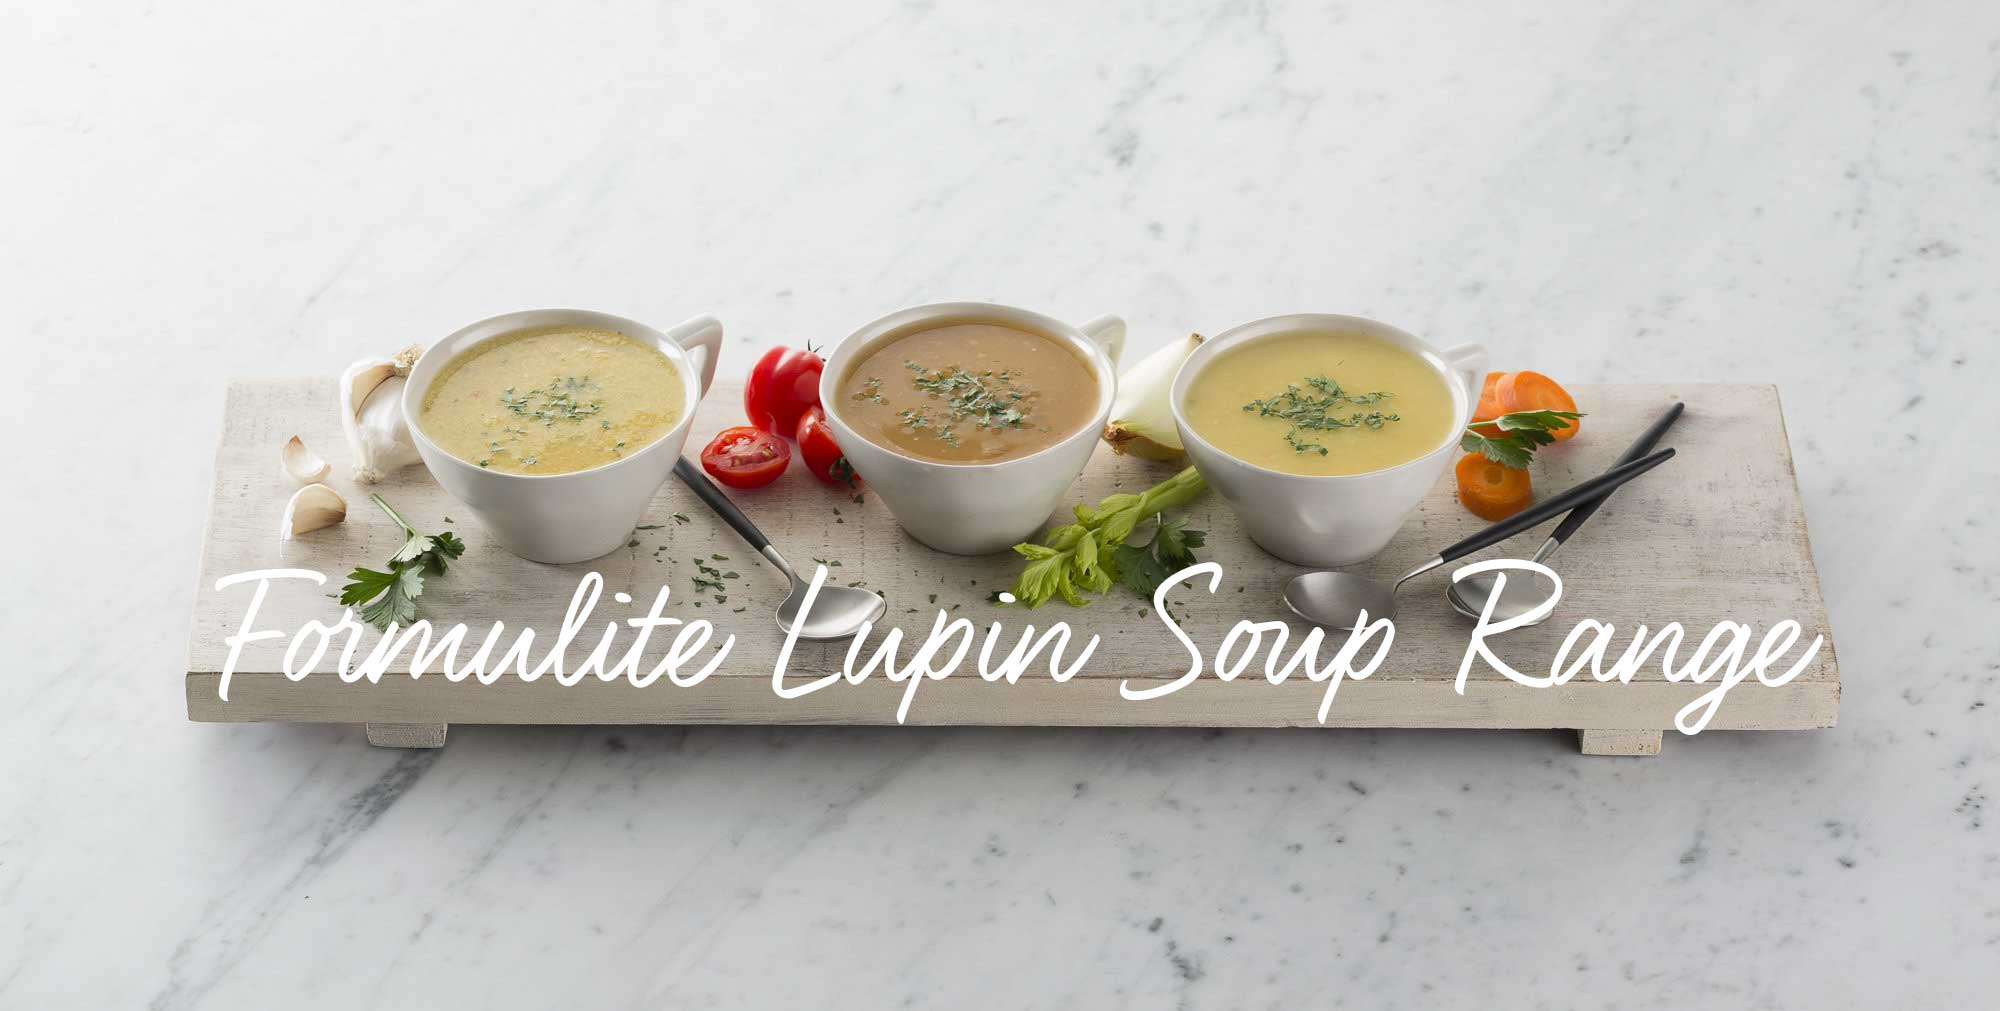 lupin soups help manage weight